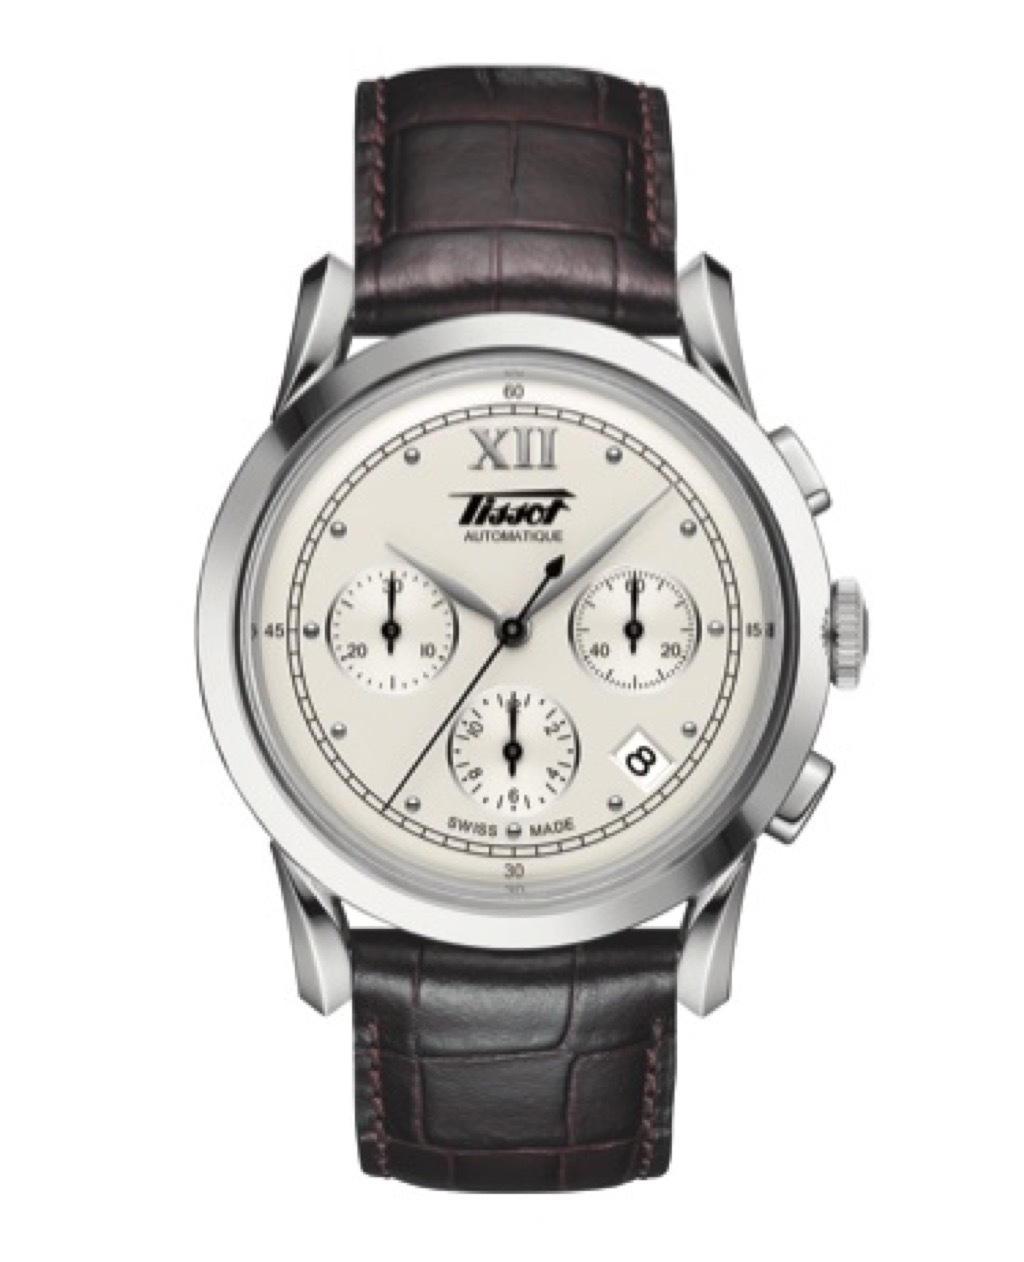 The Tissot Heritage 1948 is cool vintage watch you can buy right now